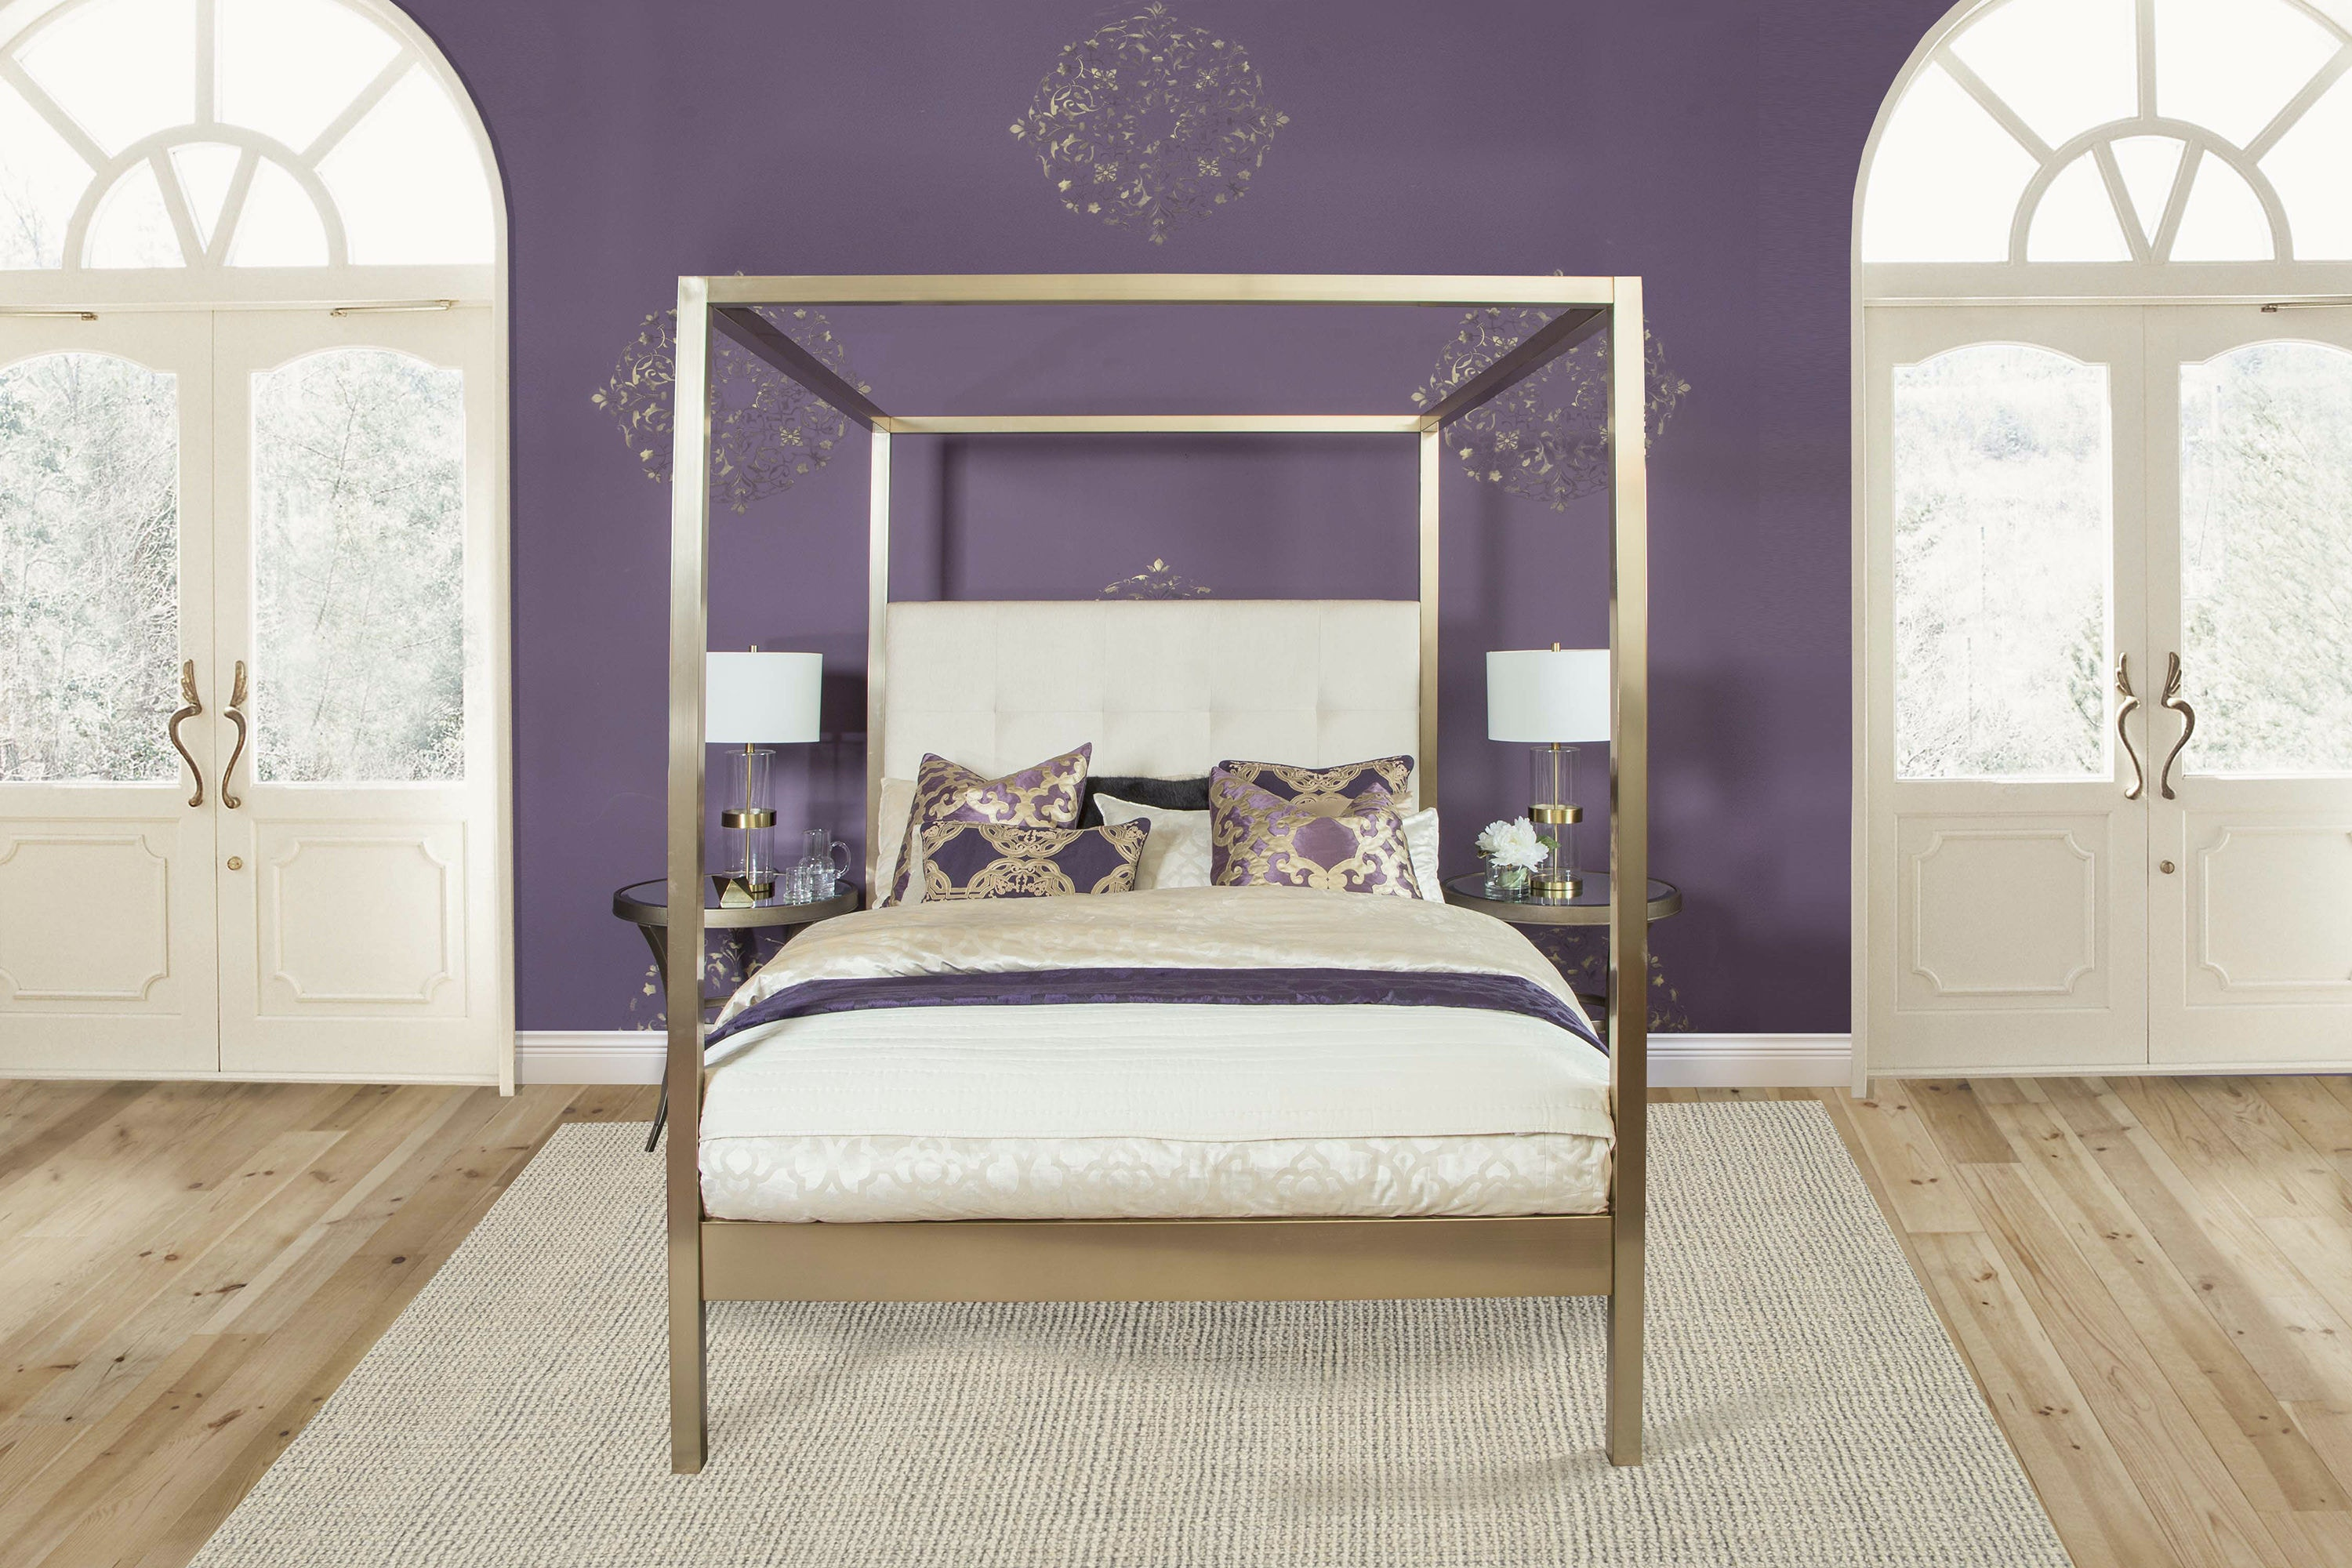 Hillsdale Furniture Avalon Bed Set - Queen - Bed Rails Included 1935BQ & Hillsdale Furniture Bedroom Avalon Bed Set - Queen - Bed Rails ...